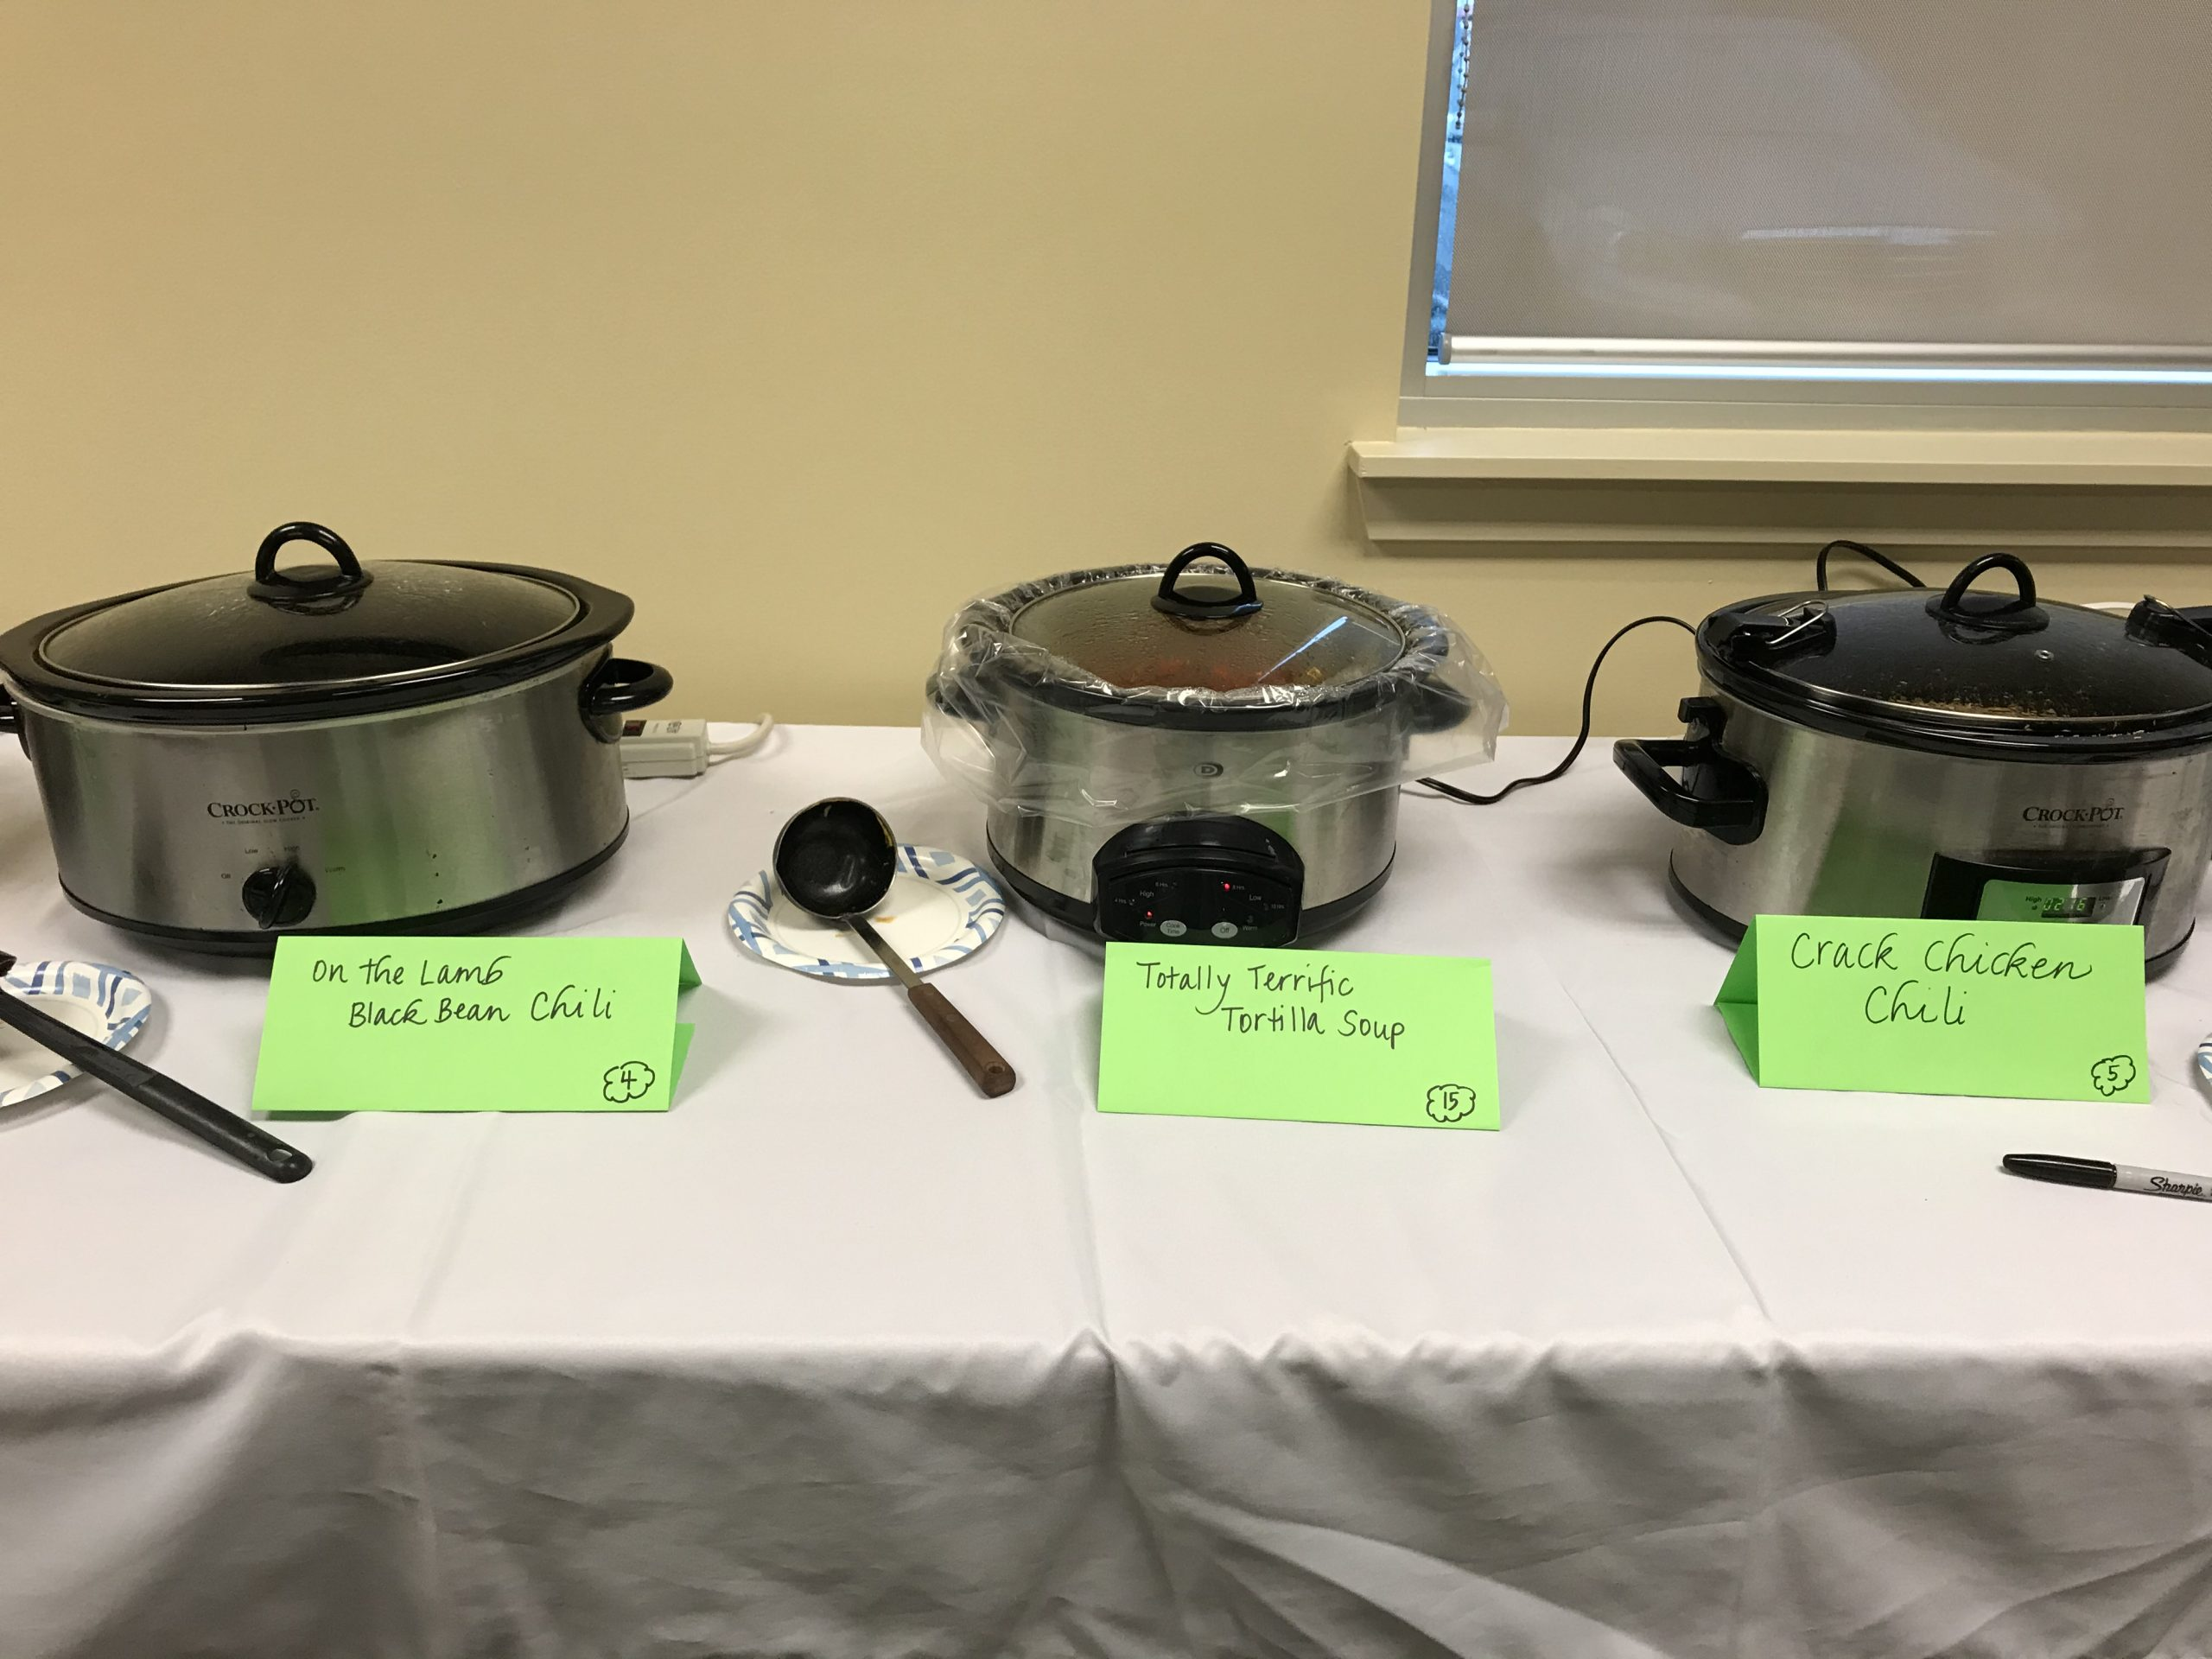 Crock pots of chili